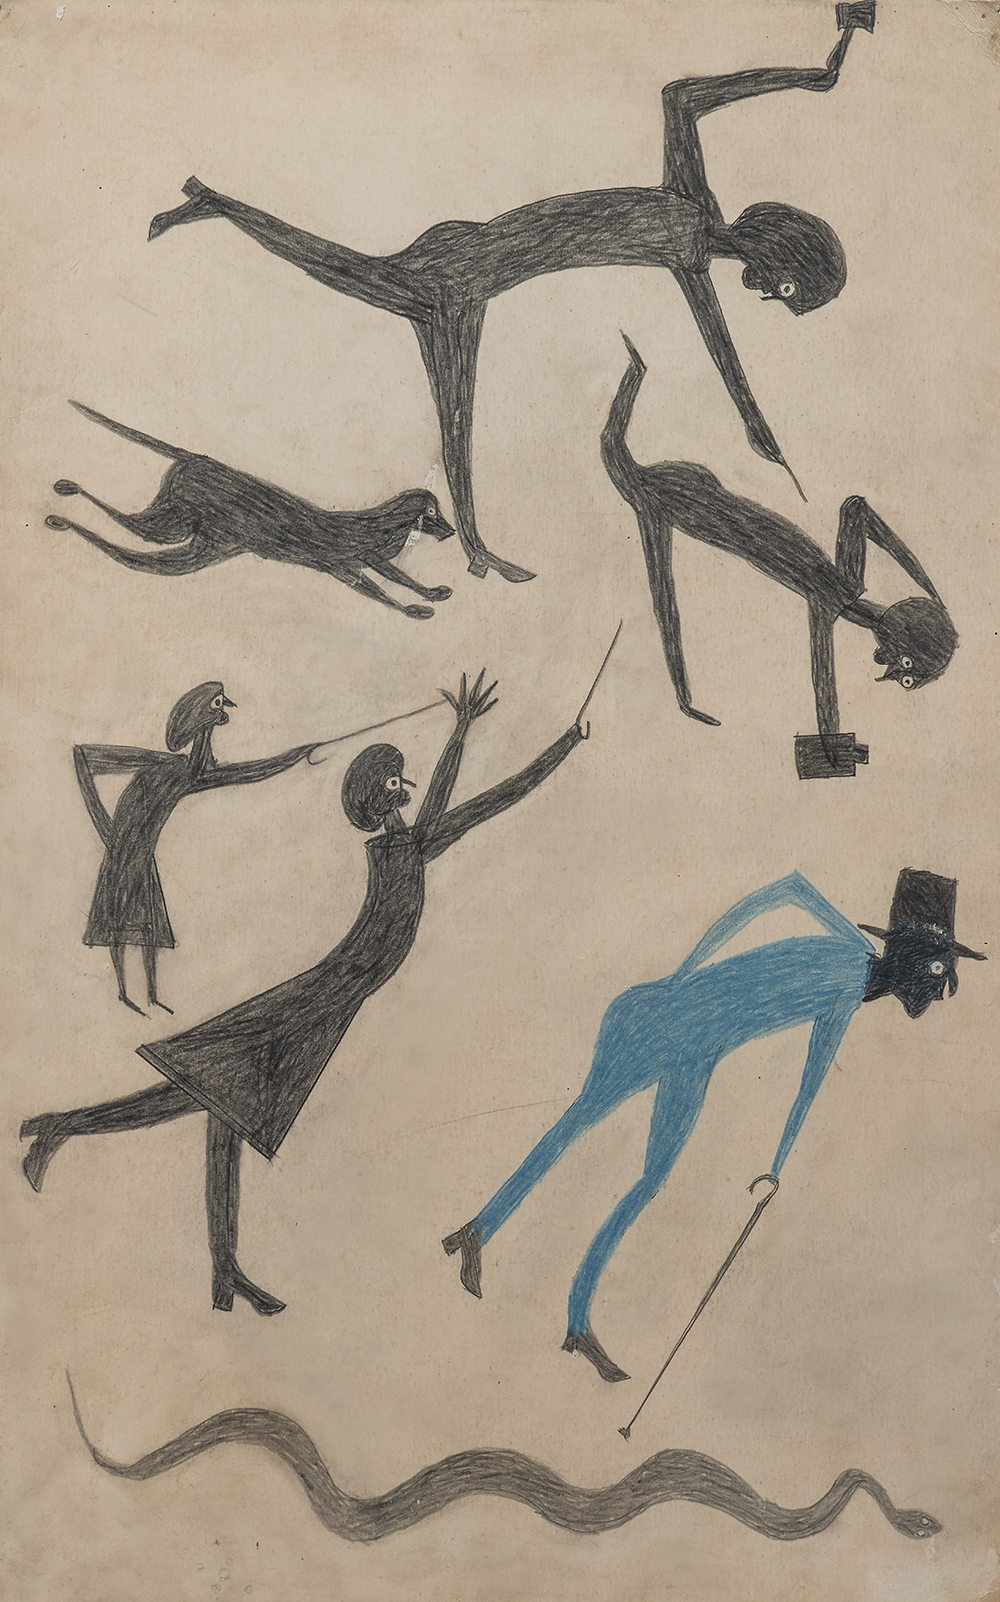 Untitled (Event with Man in Blue and Snake), by Bill Traylor, 1939. Collection of Penny and Allan Katz. Photograph by Gavin Ashworth.